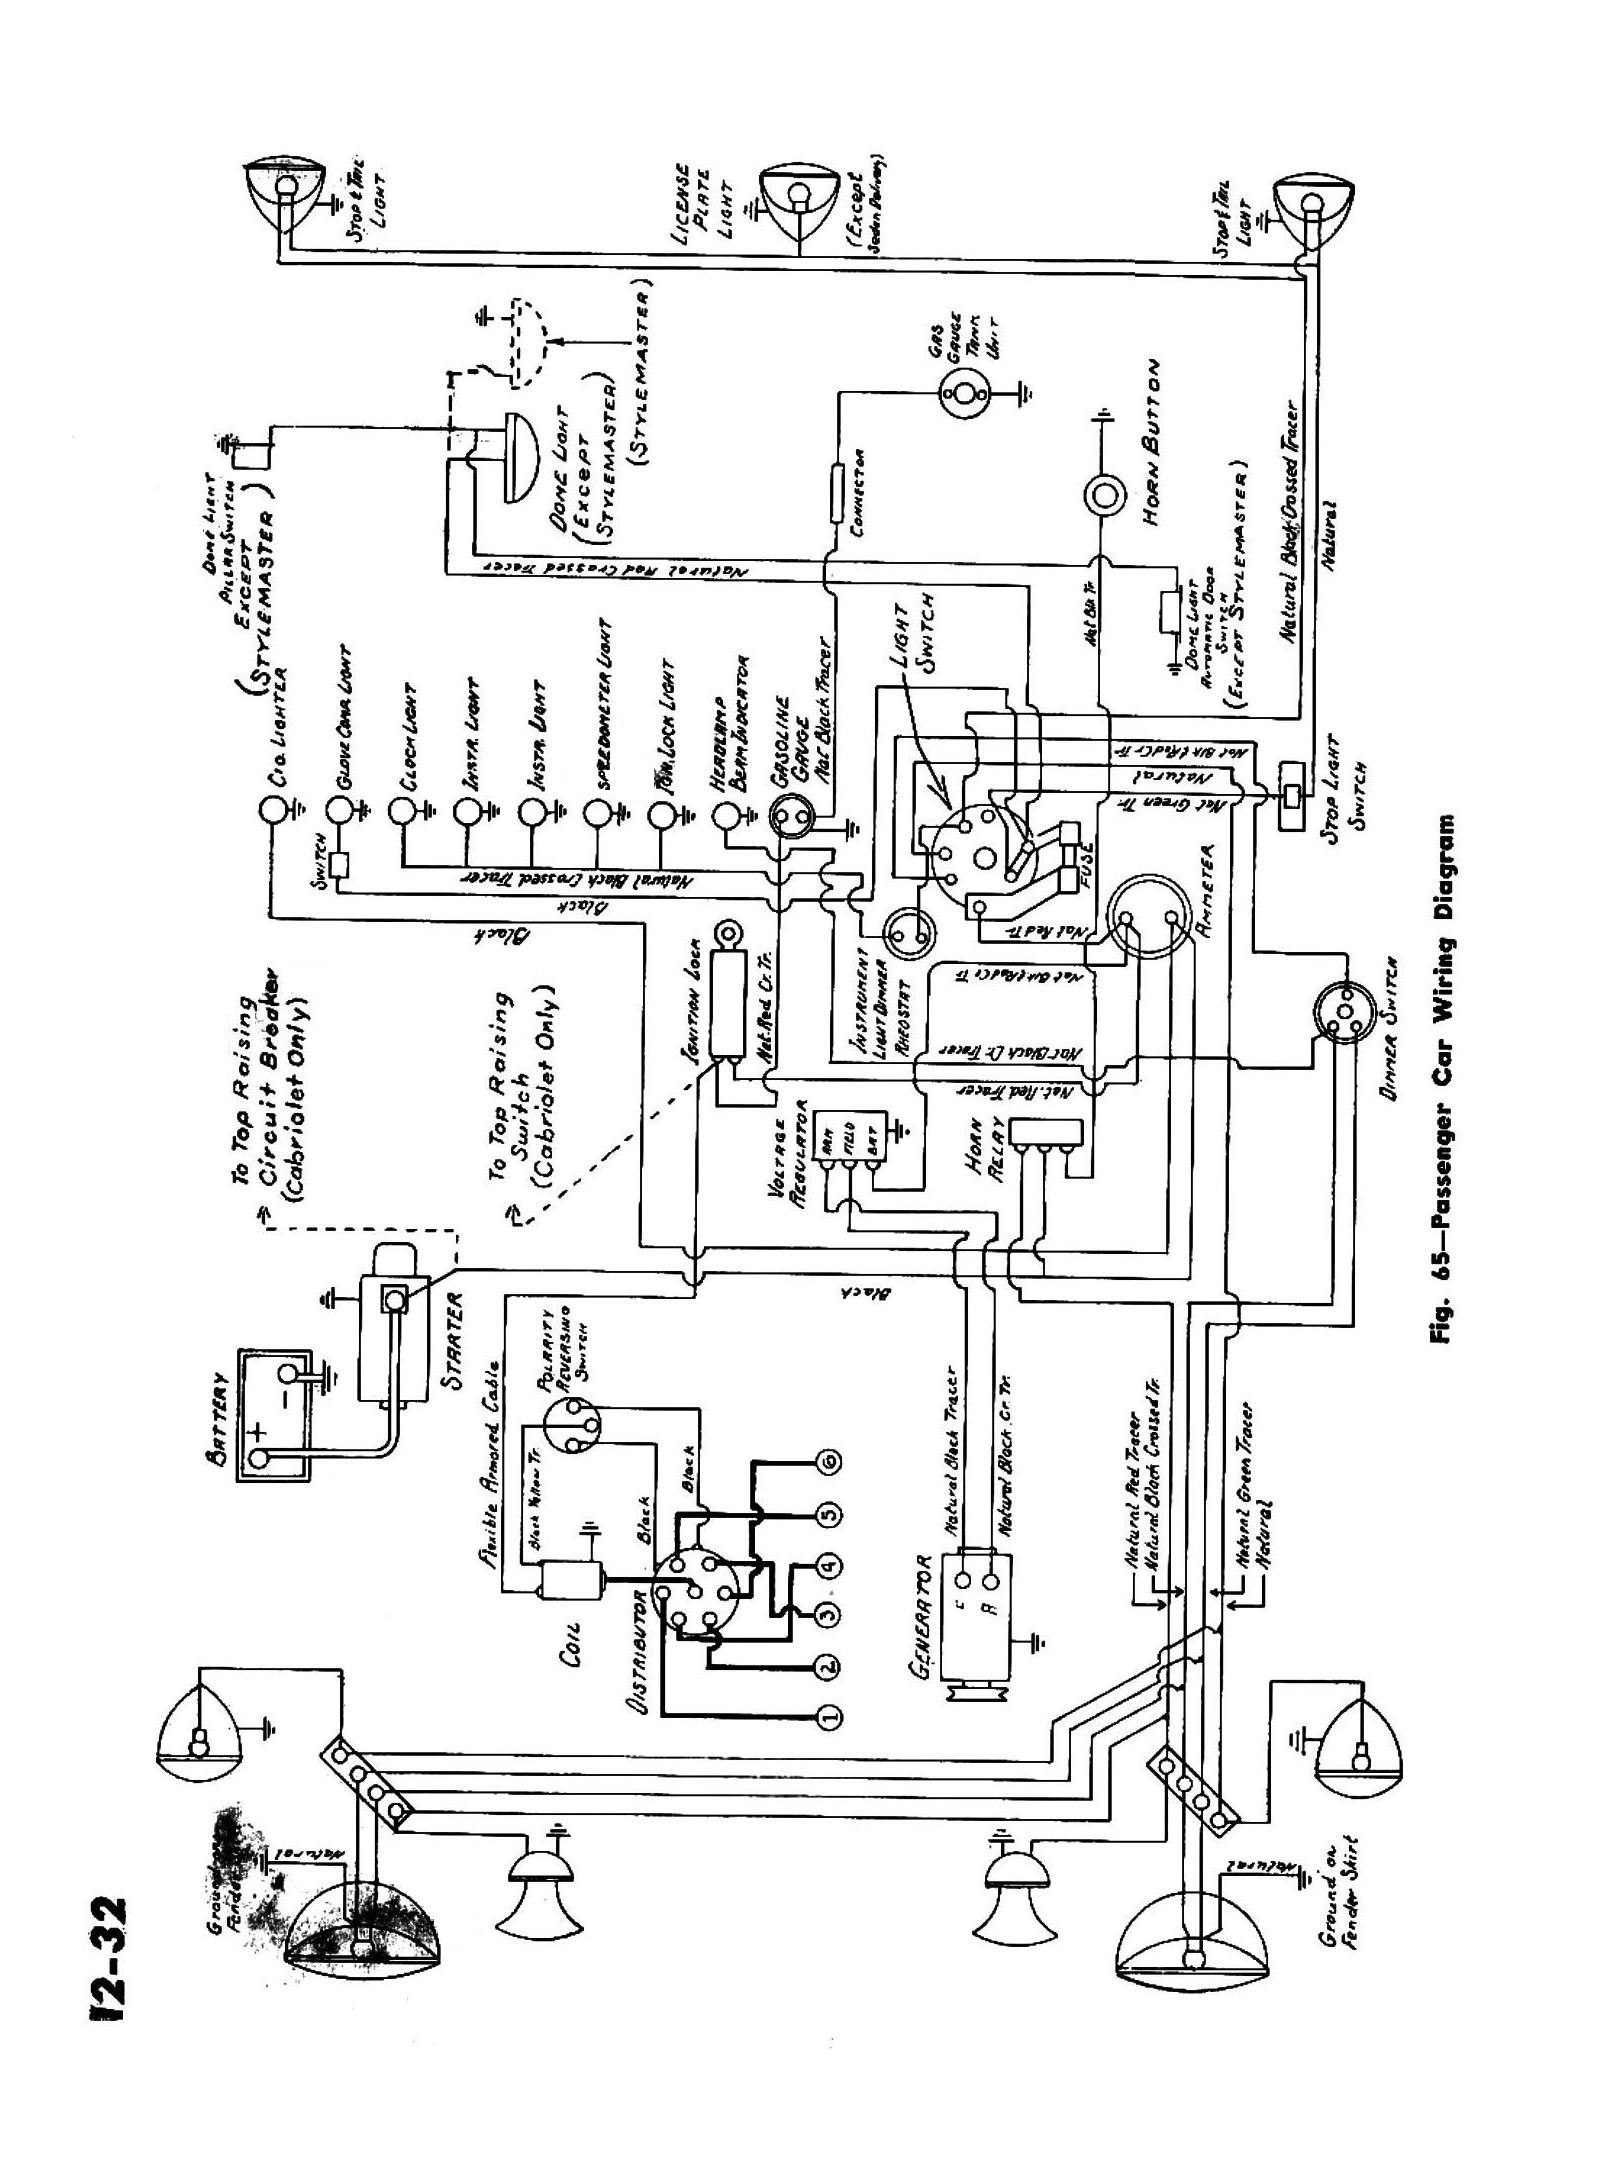 45car chevy wiring diagrams autocar wiring schematic at fashall.co